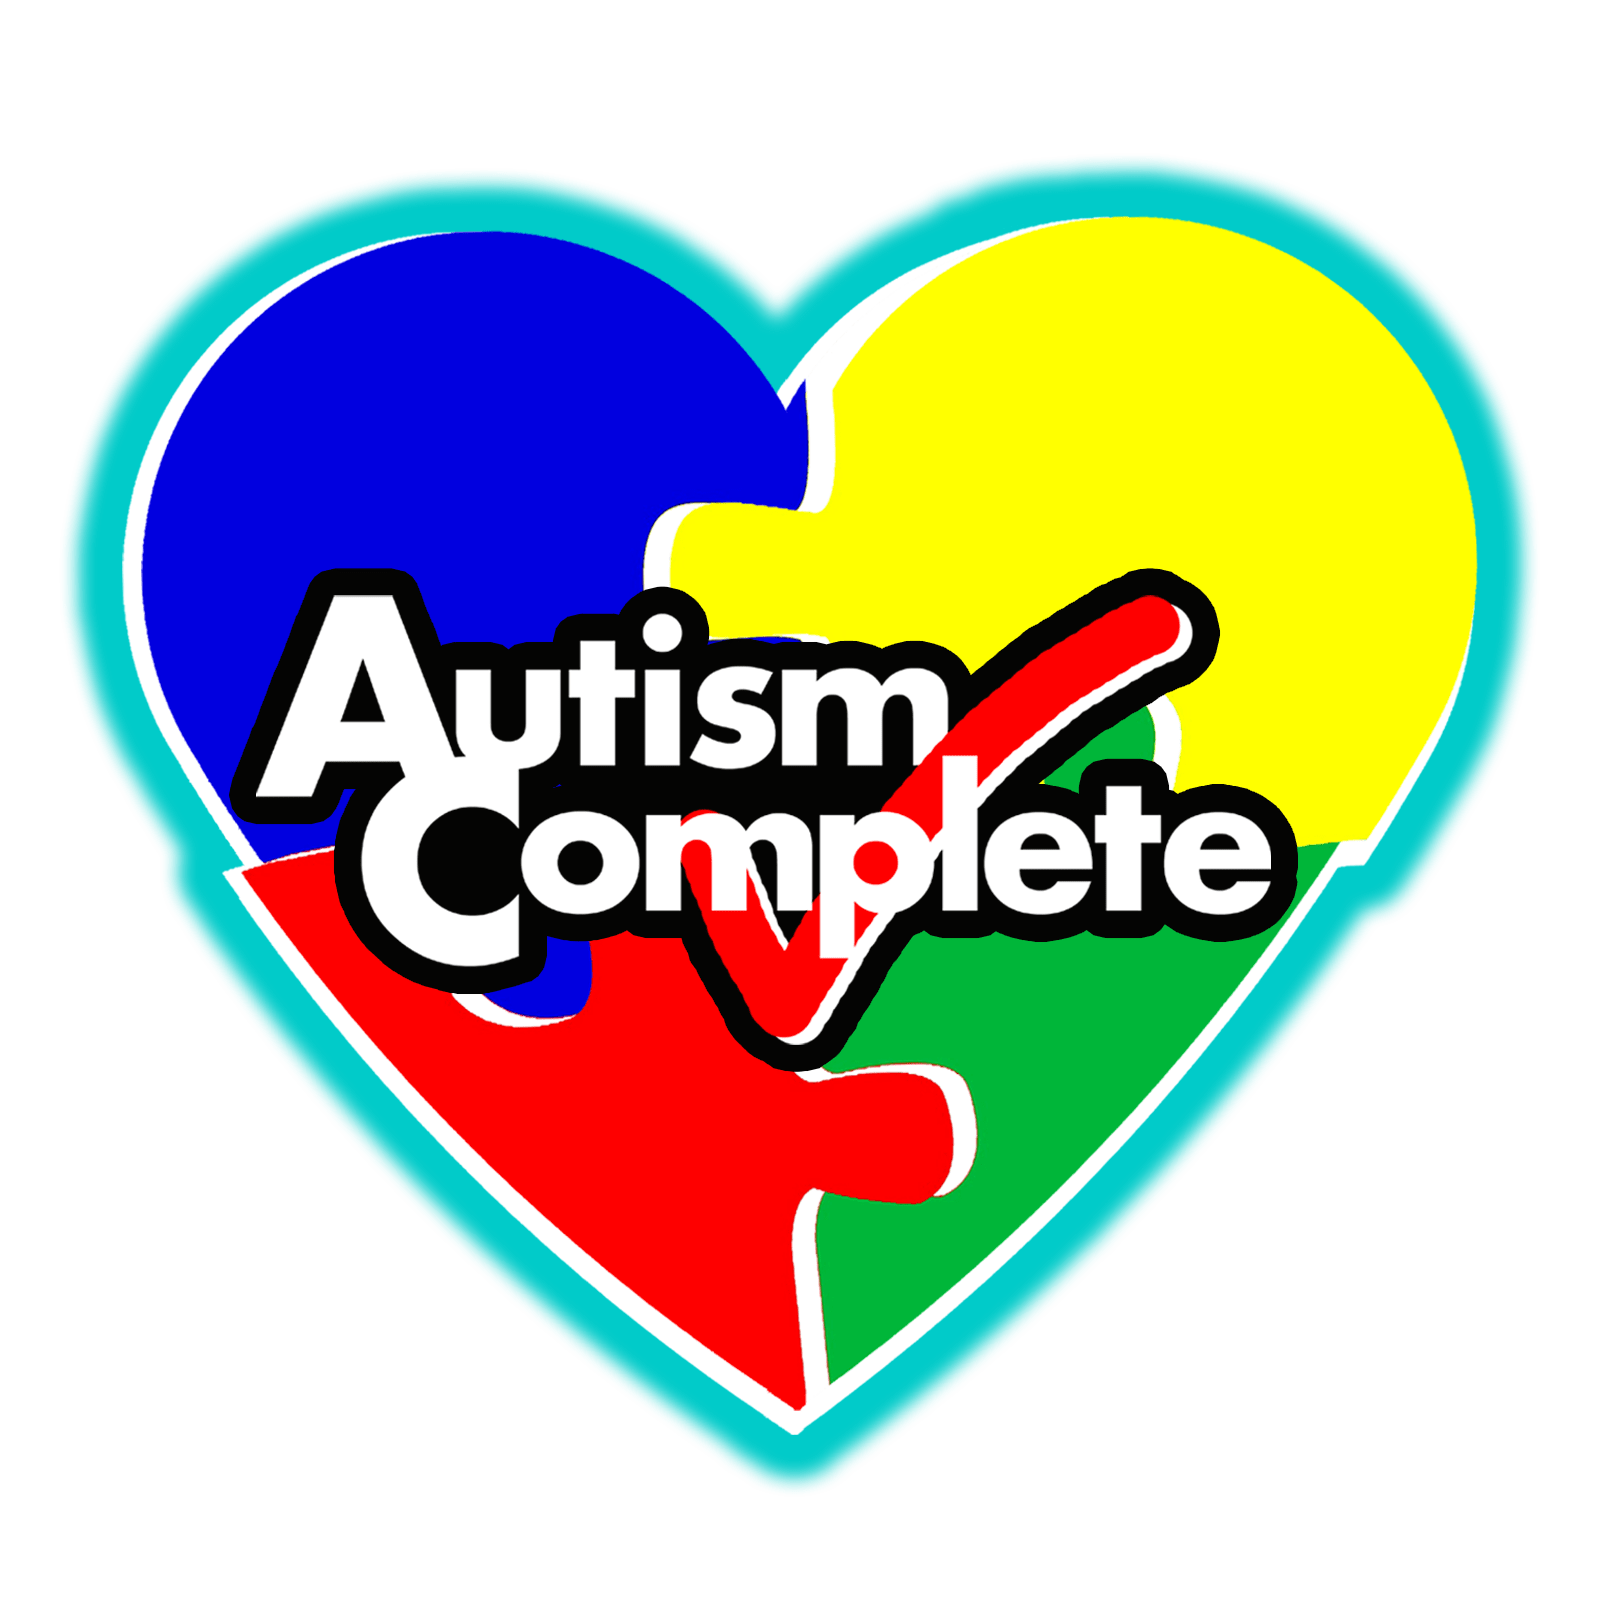 Autism Complete Teacher Resources